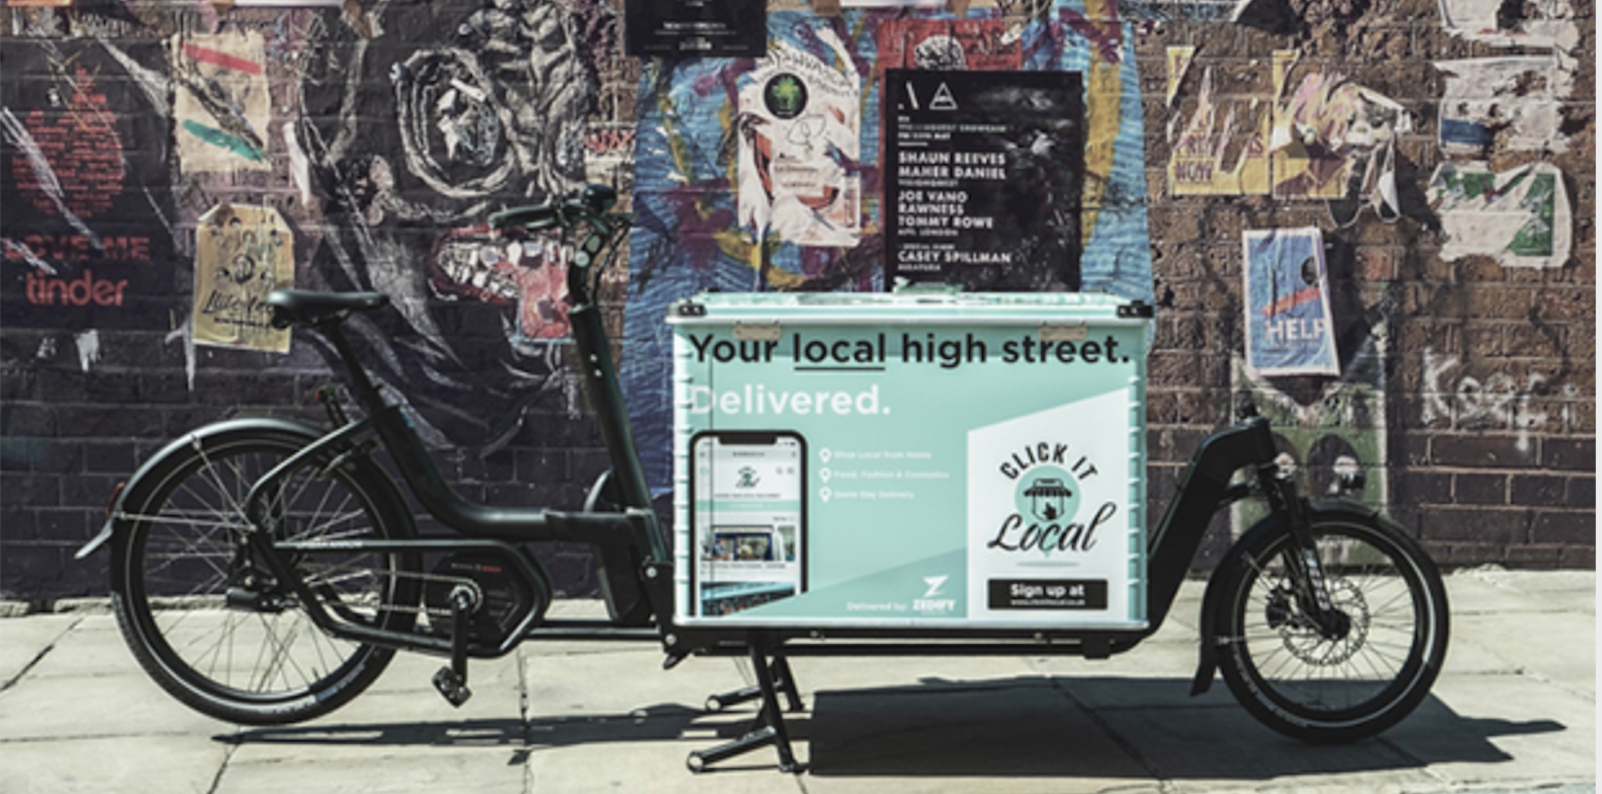 Above: The Click It Local bicycle which forms part of the marketing for the site.